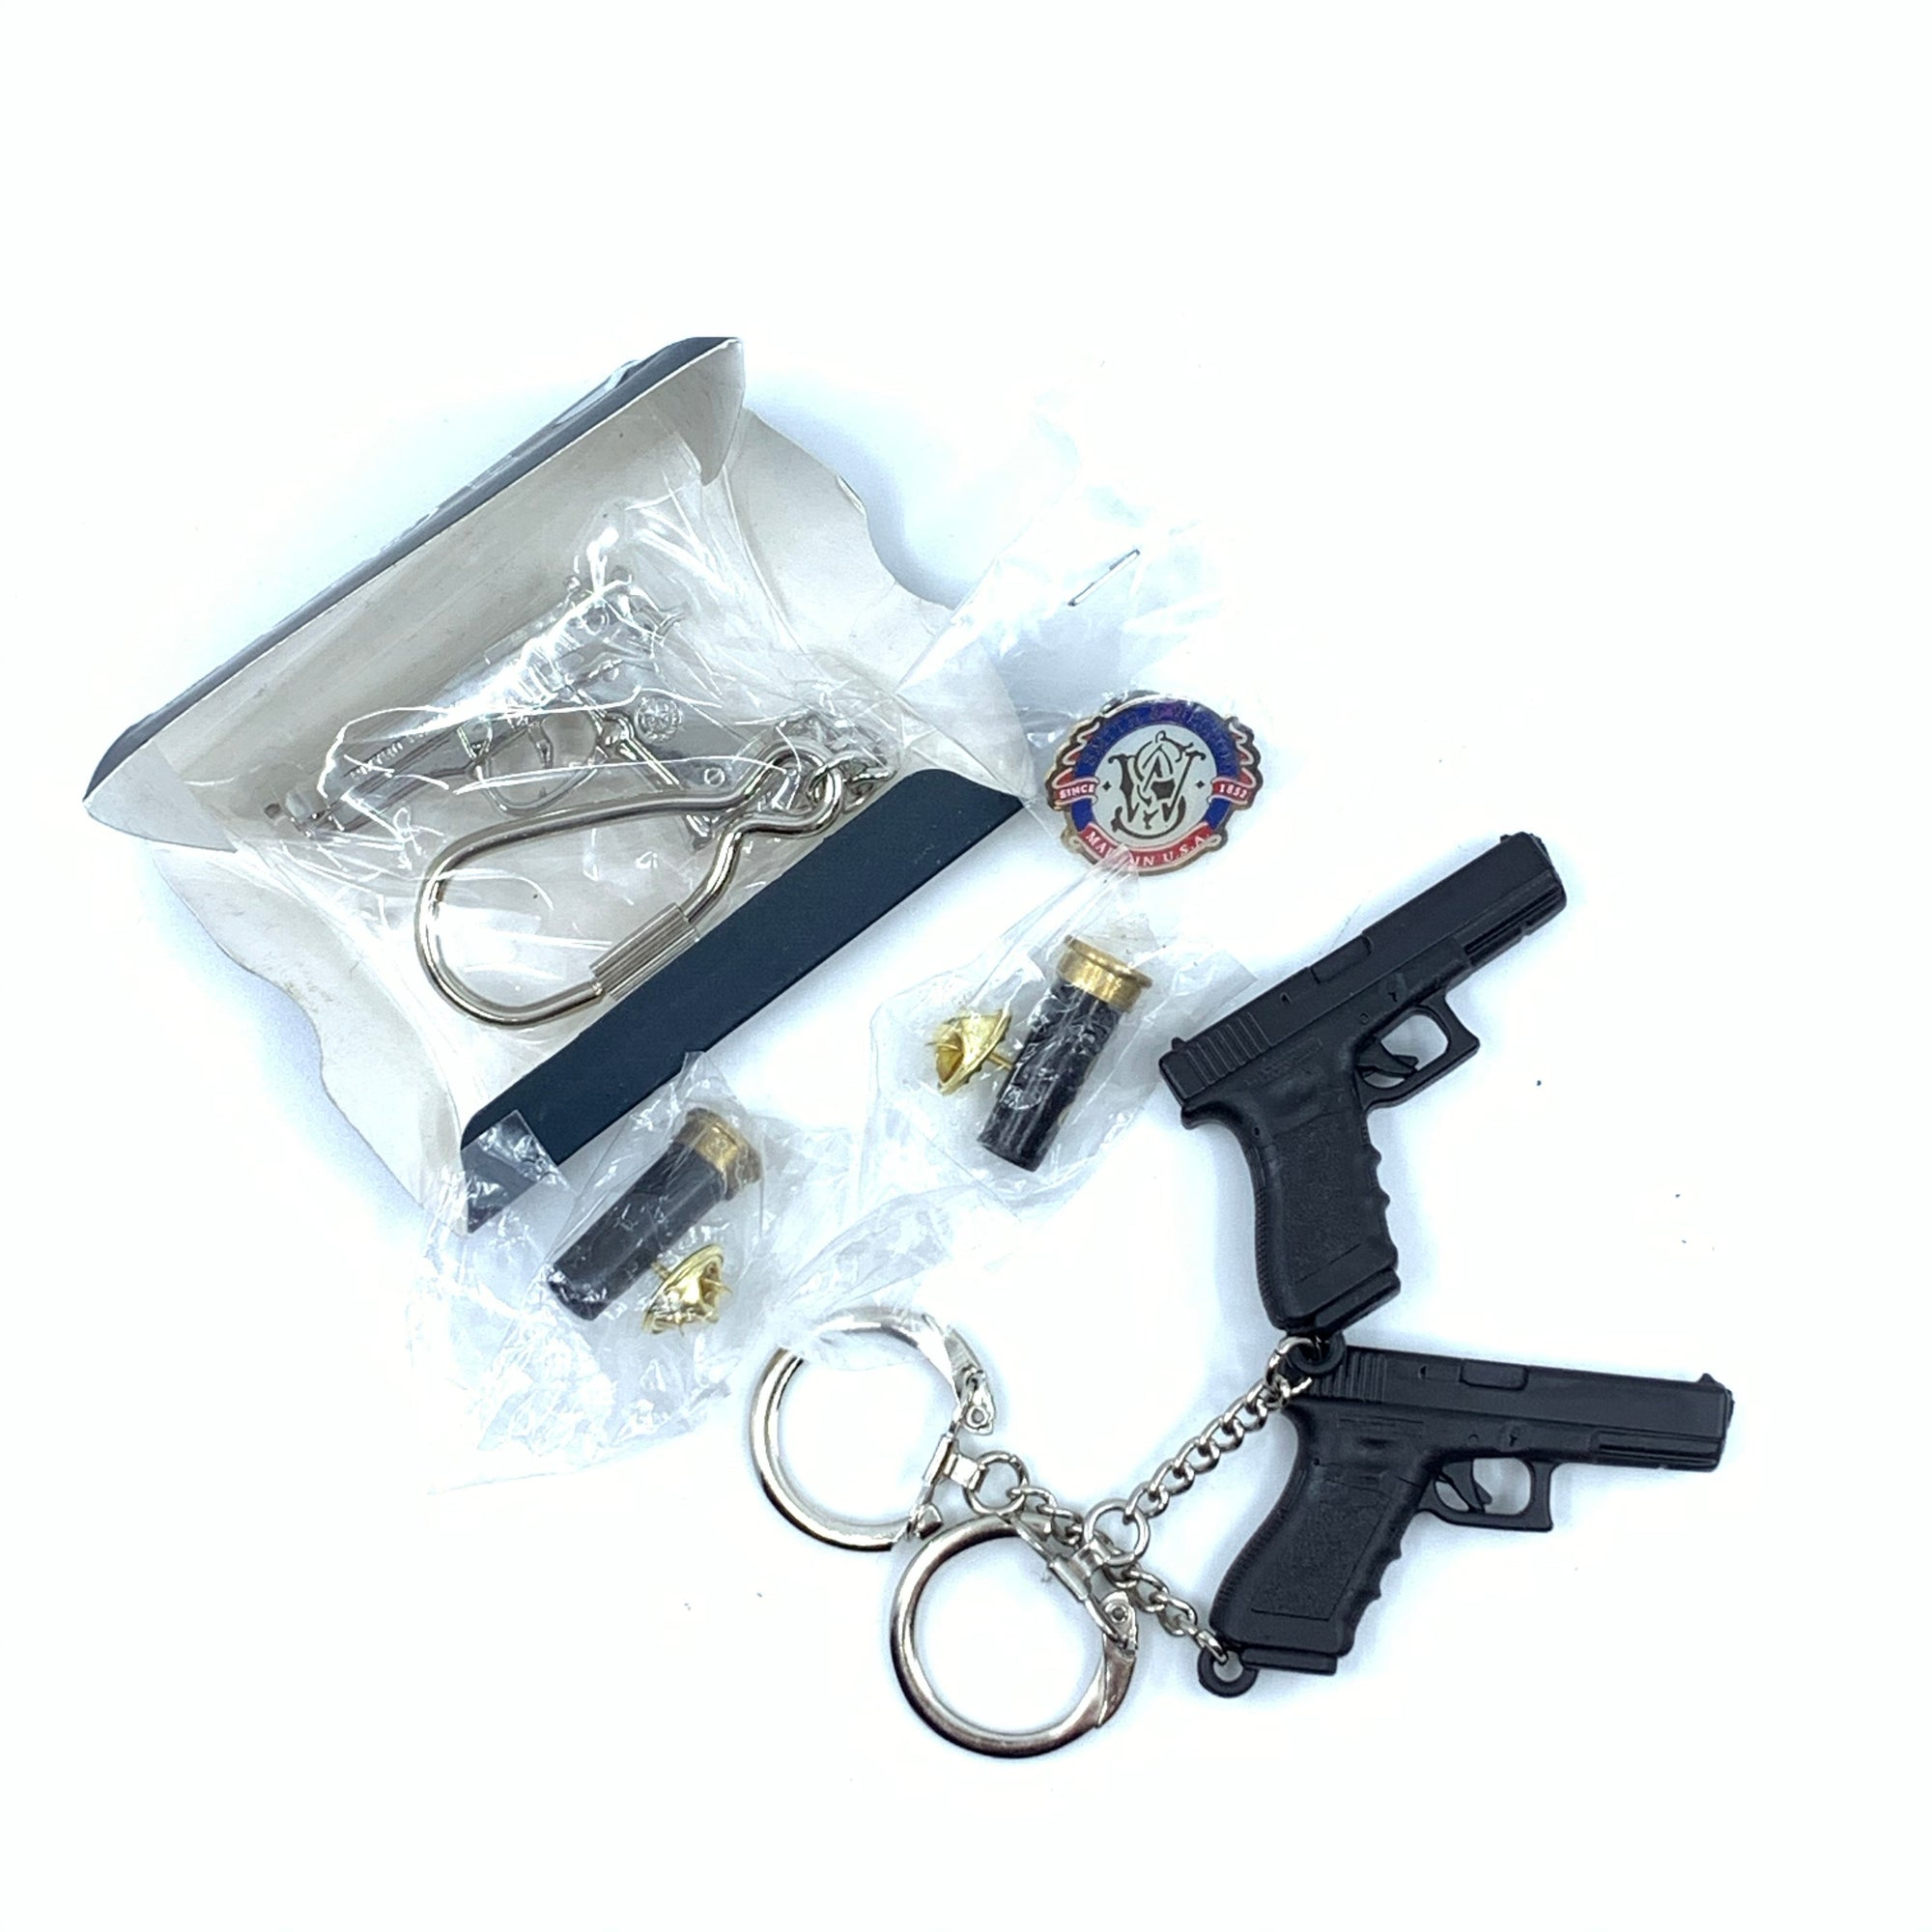 2 Browning Shotshell Lapel Pin, 2 Glock Key Chains, 1 Beretta 92 Key Chain 1 Smith & Wesson Lapel Pin